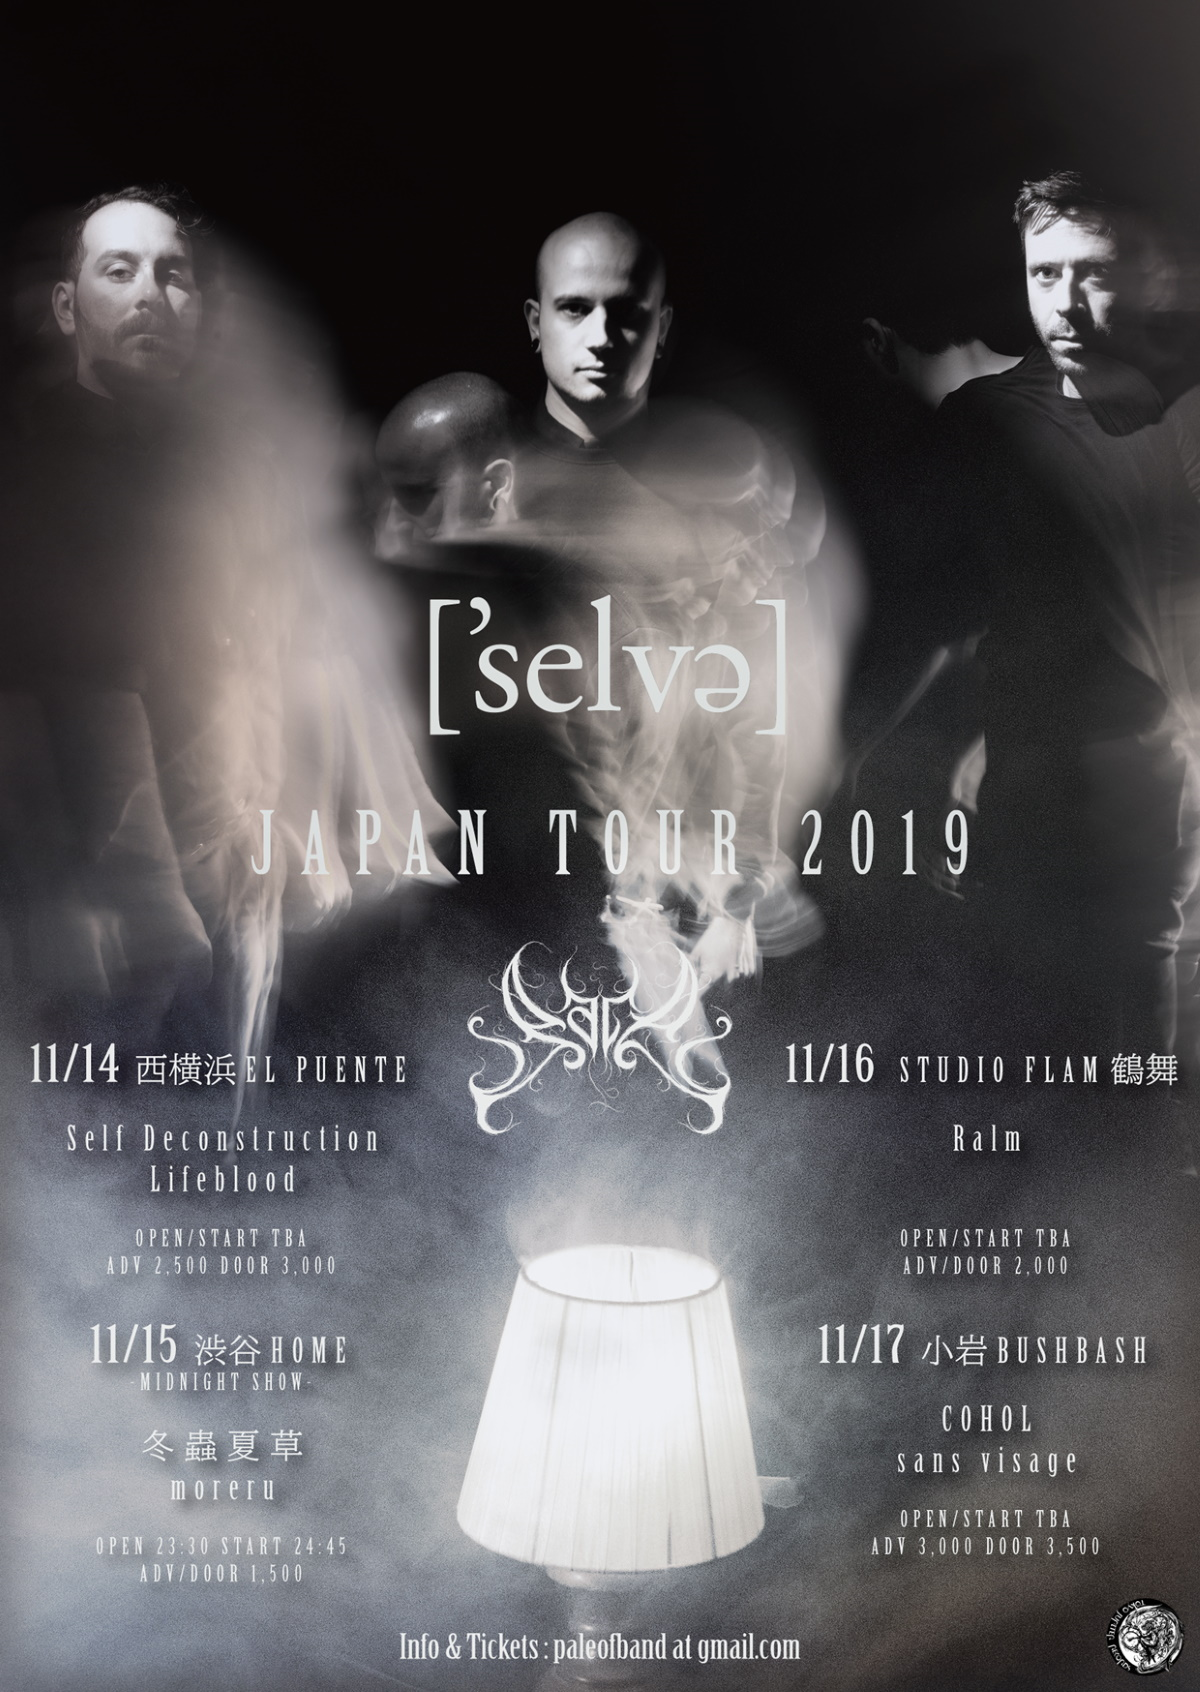 SELVA Japanese tour 2019